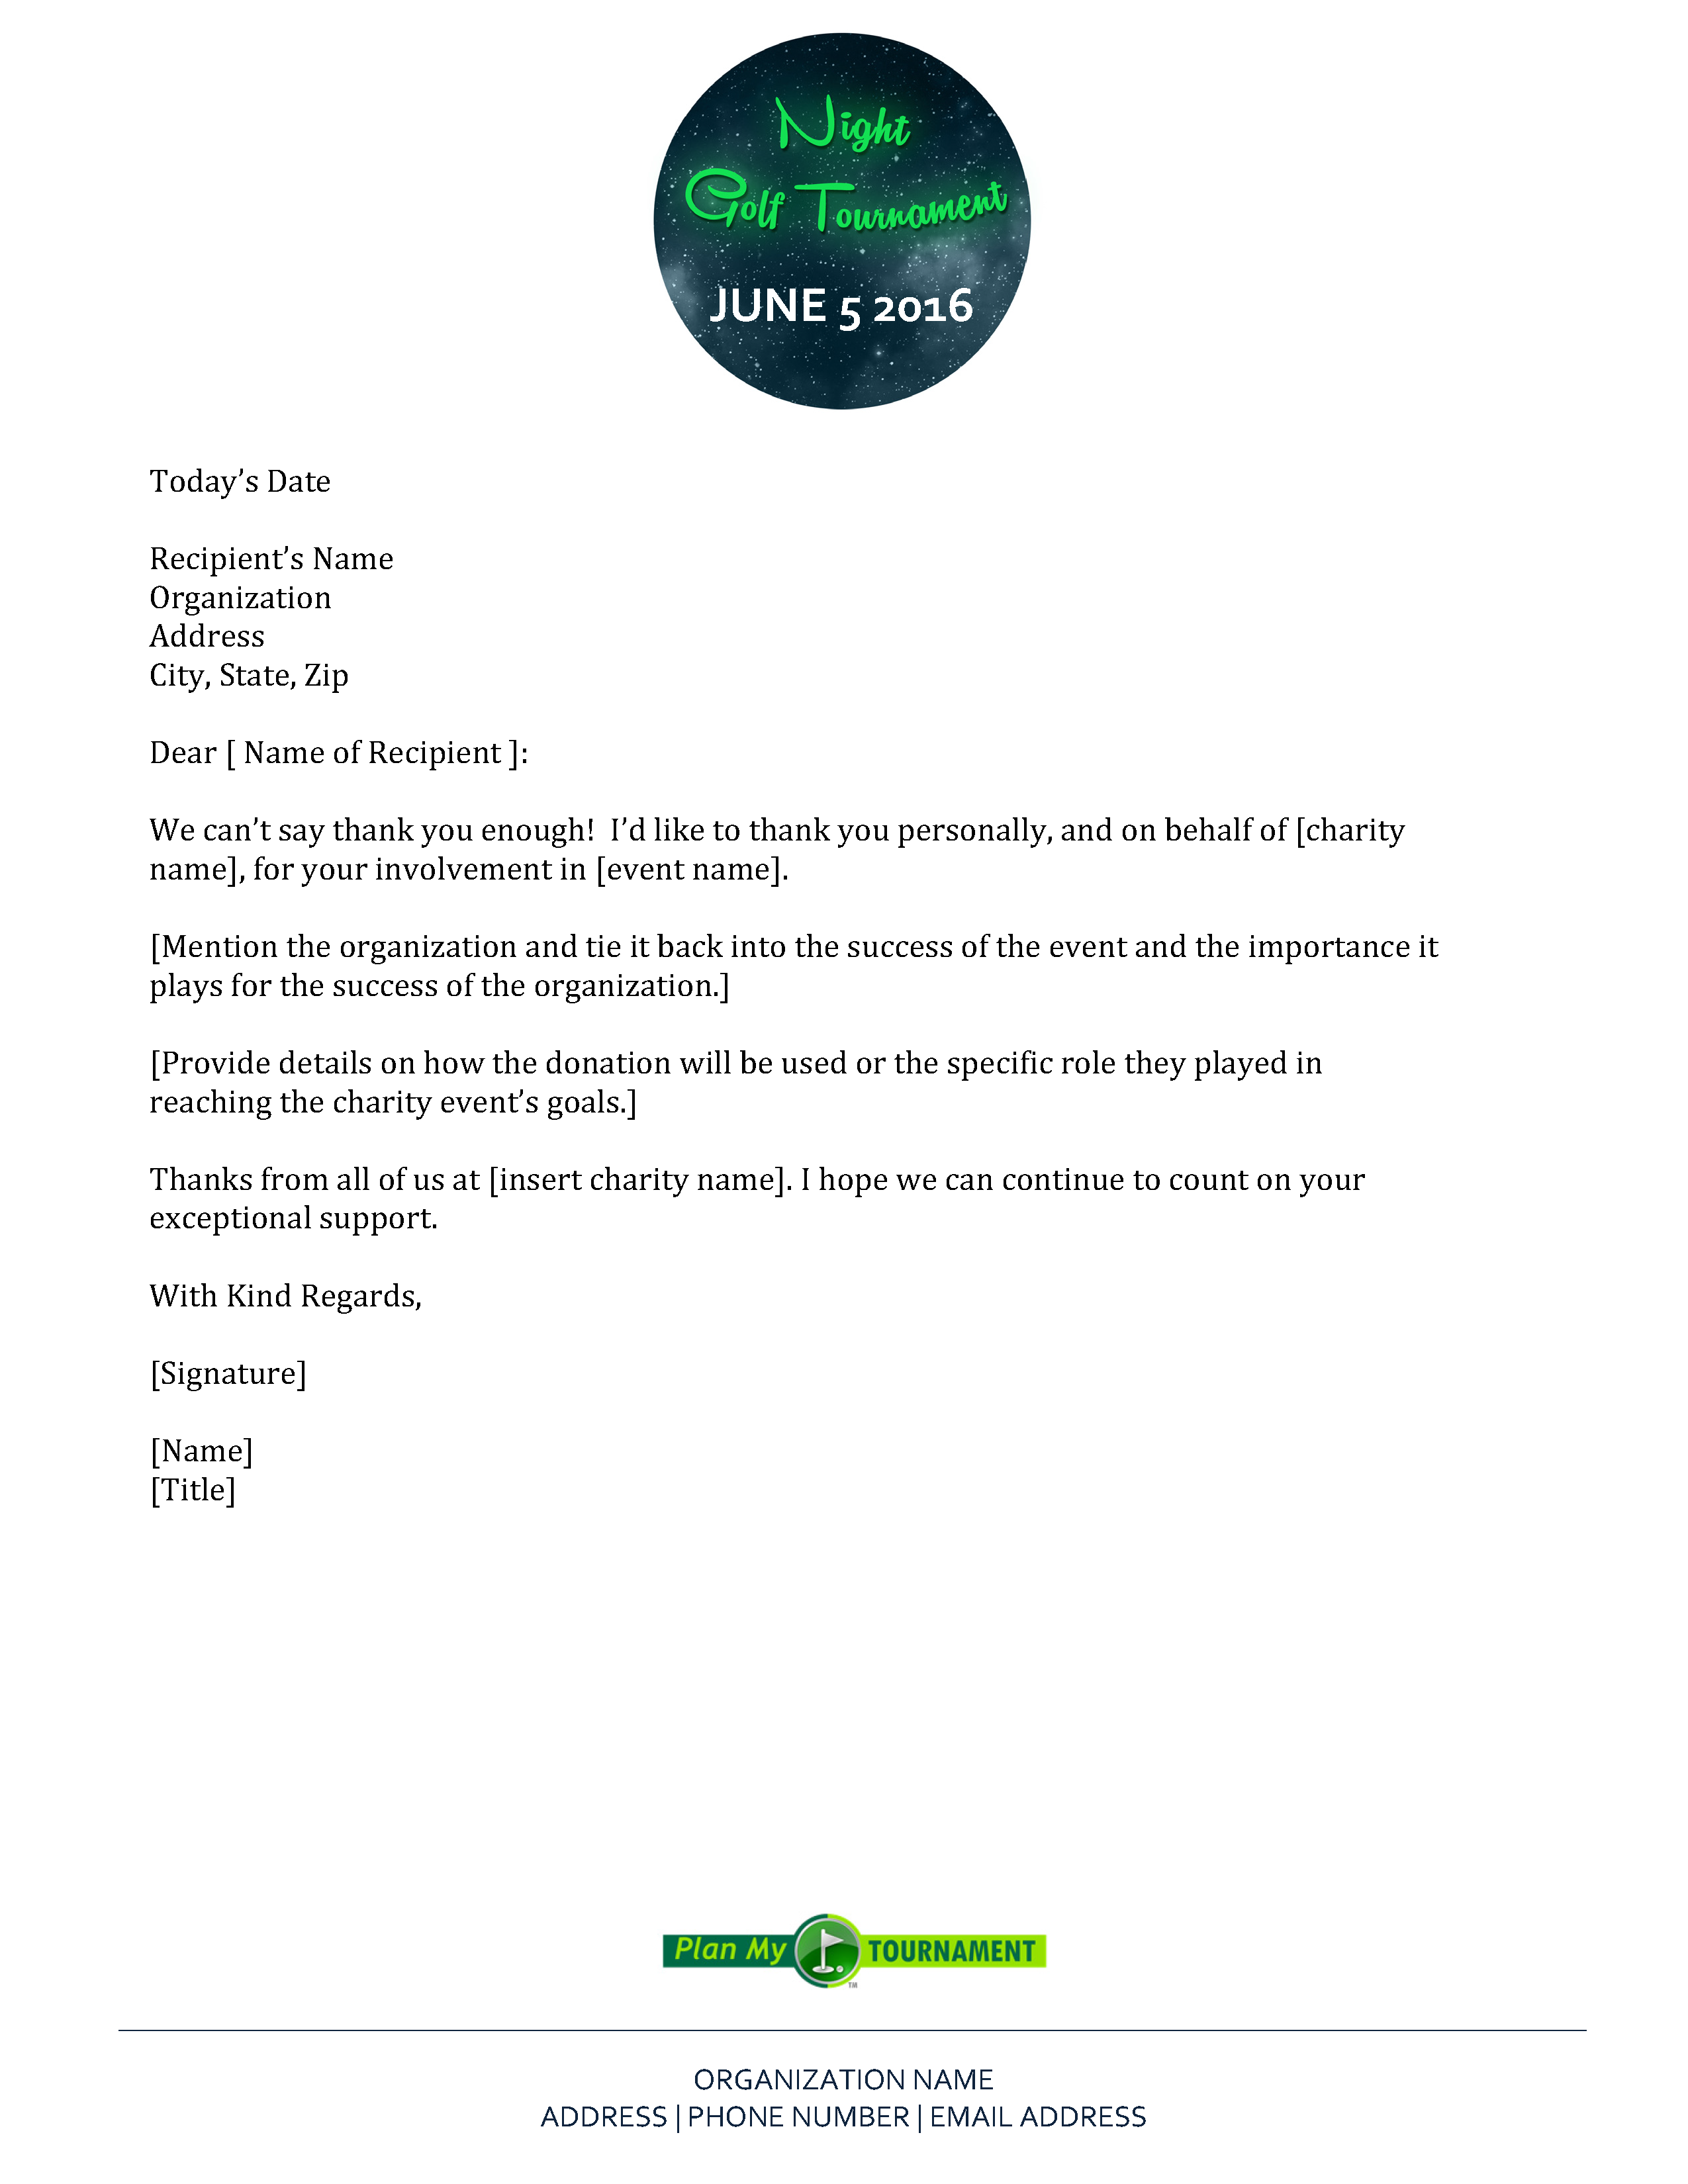 Free Night Golf Tournament Thank You Letter Template Http Planmytournament Com Plan Tournament Whi Thank You Letter Template Golf Tournament Letter Templates